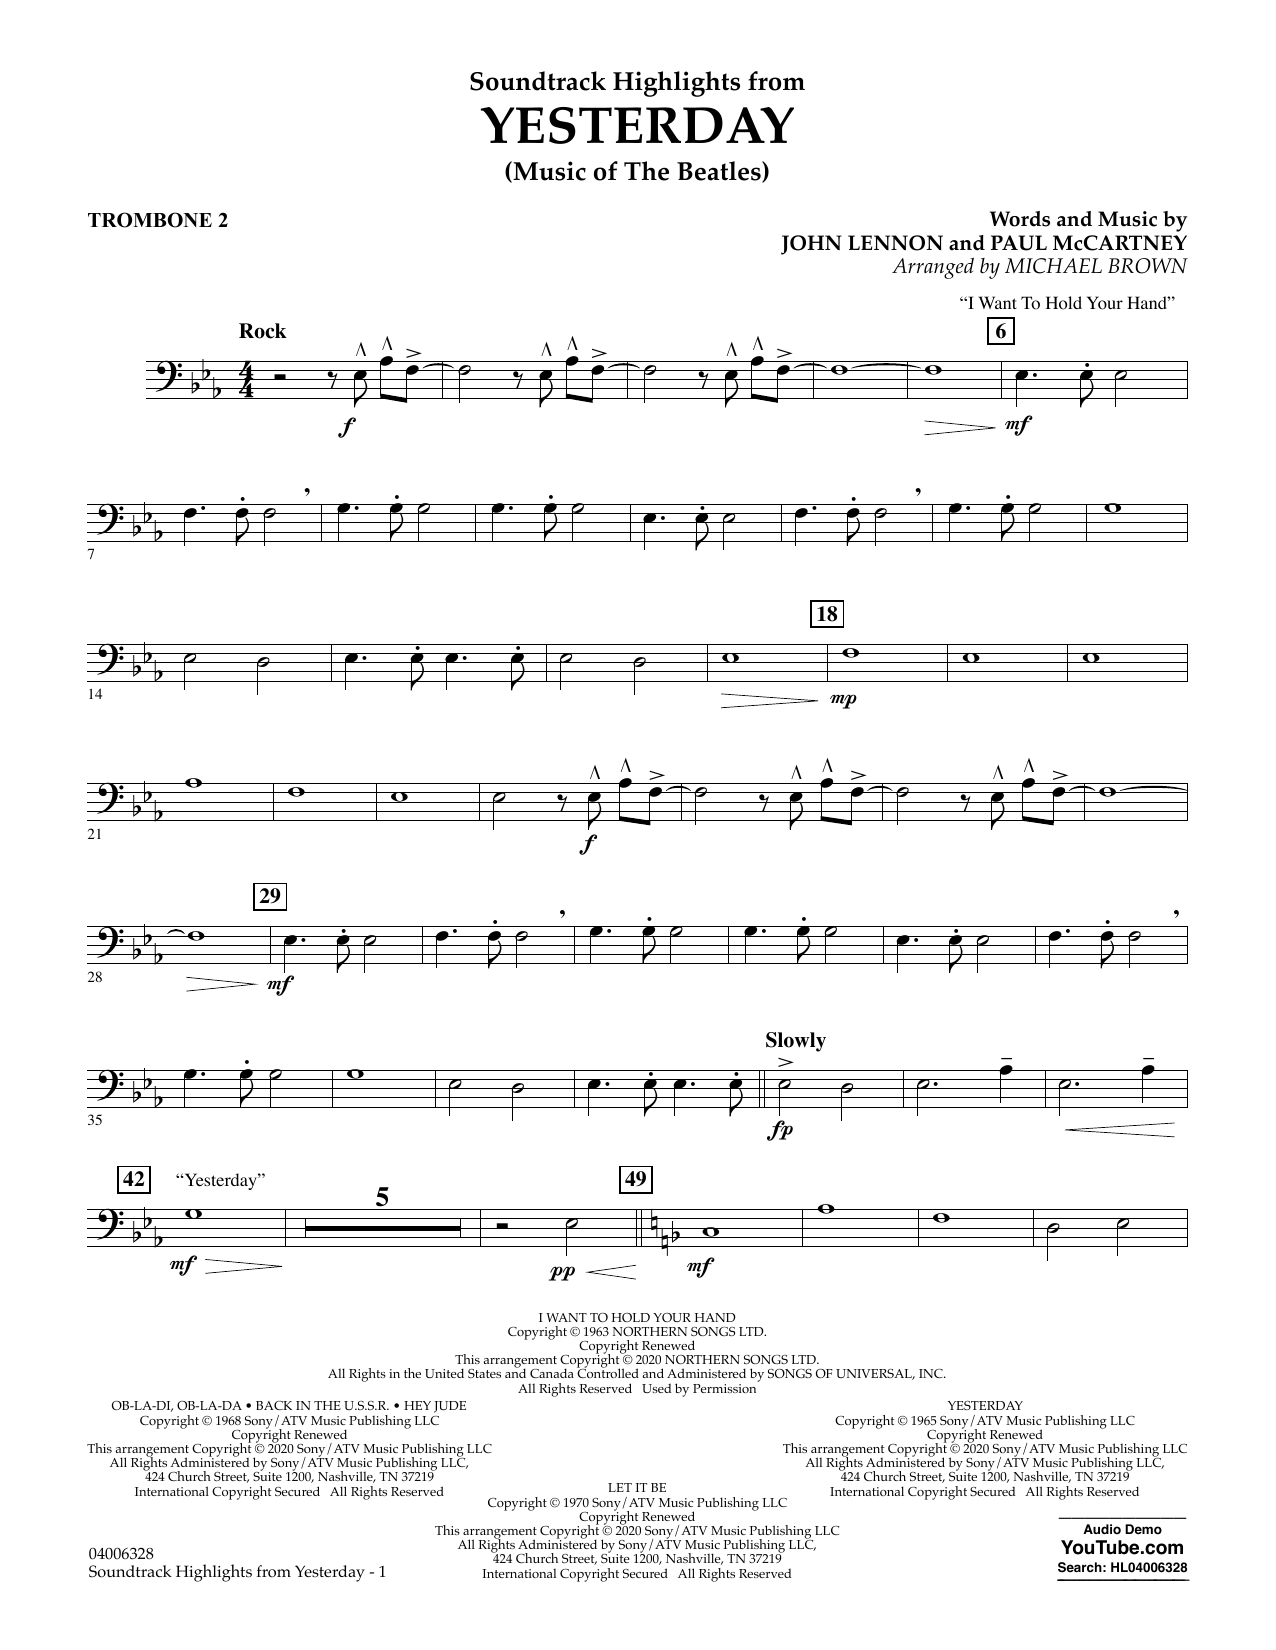 The Beatles Highlights from Yesterday (Music Of The Beatles) (arr. Michael Brown) - Trombone 2 sheet music notes and chords. Download Printable PDF.